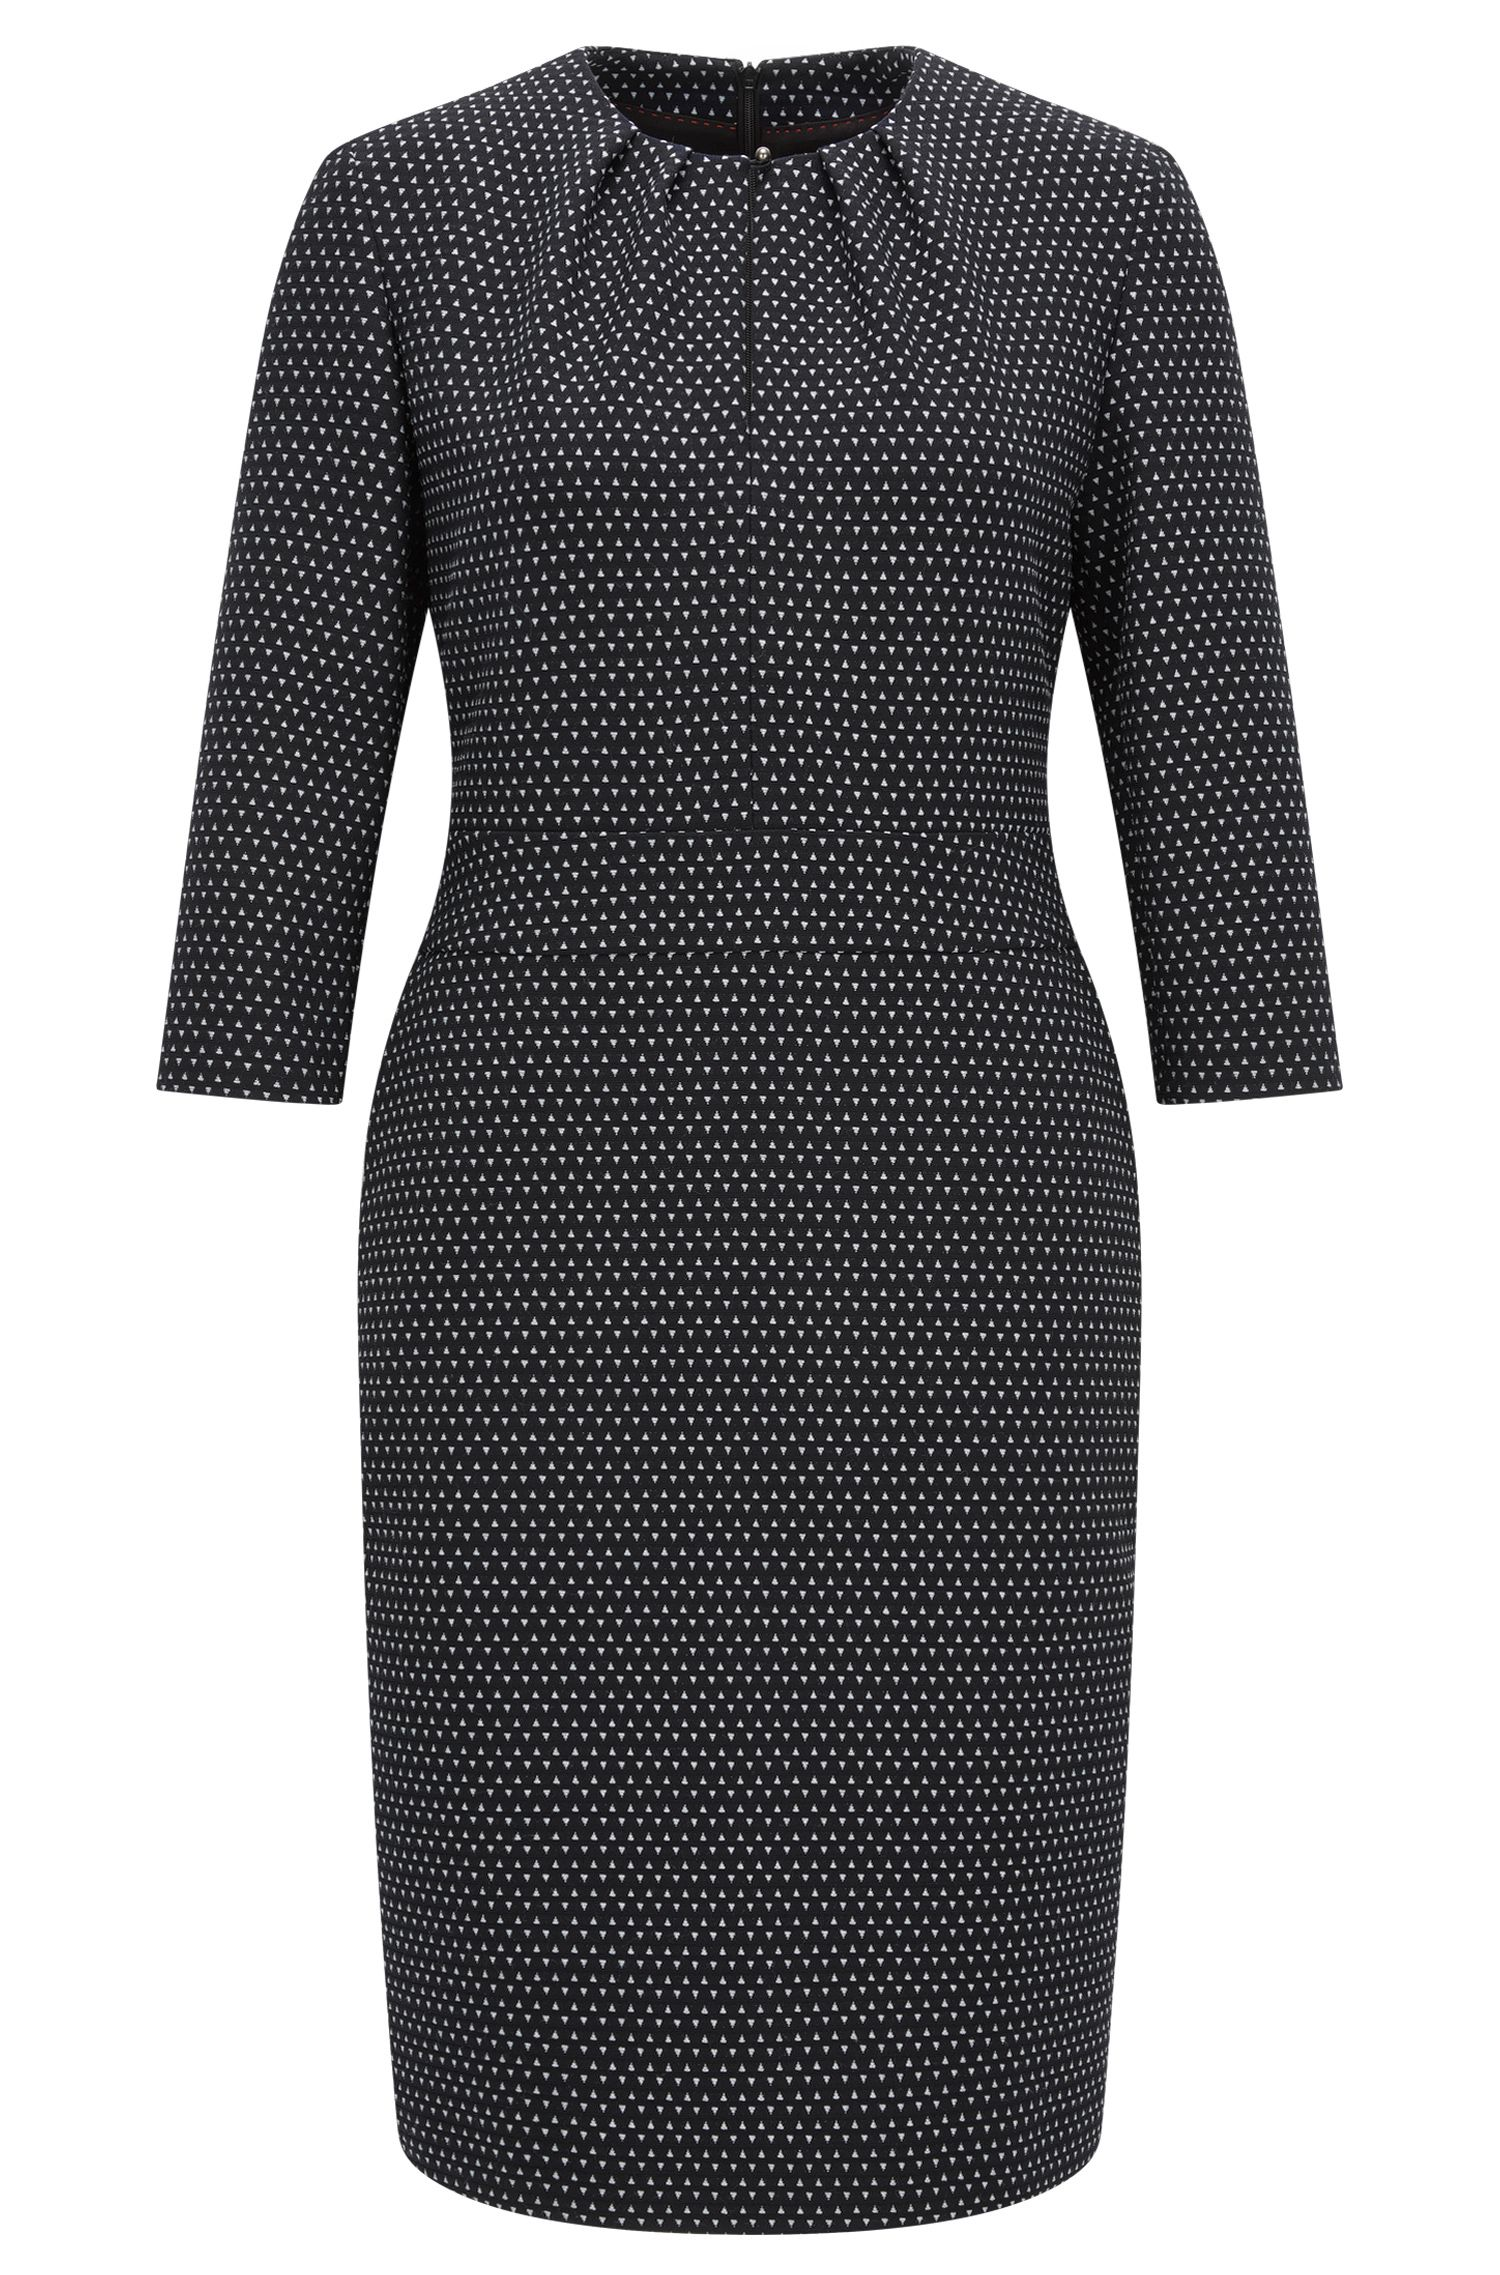 Crew-neck dress in printed stretch fabric